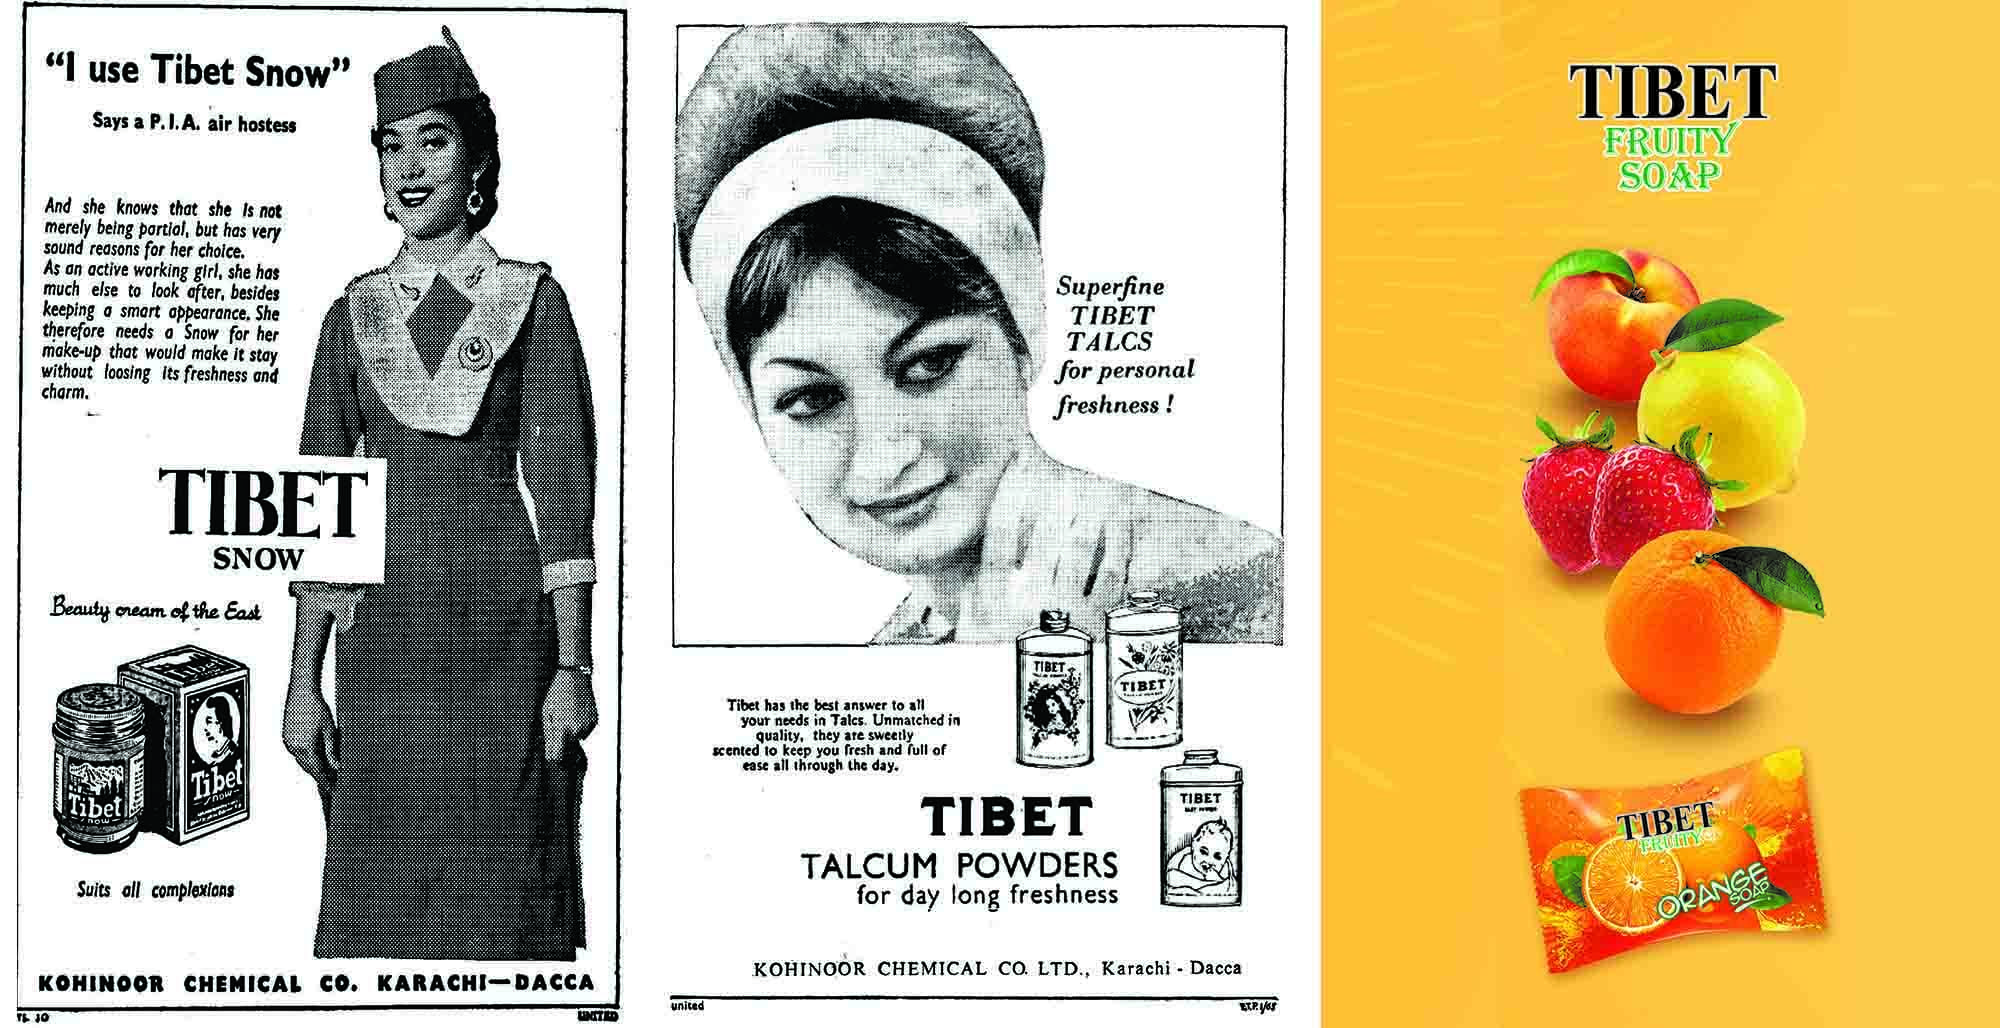 Ads for Tibet Snow, Tibet Talcum Powders and Tibet Soap from 1956, 1965 and 2018 respectively.